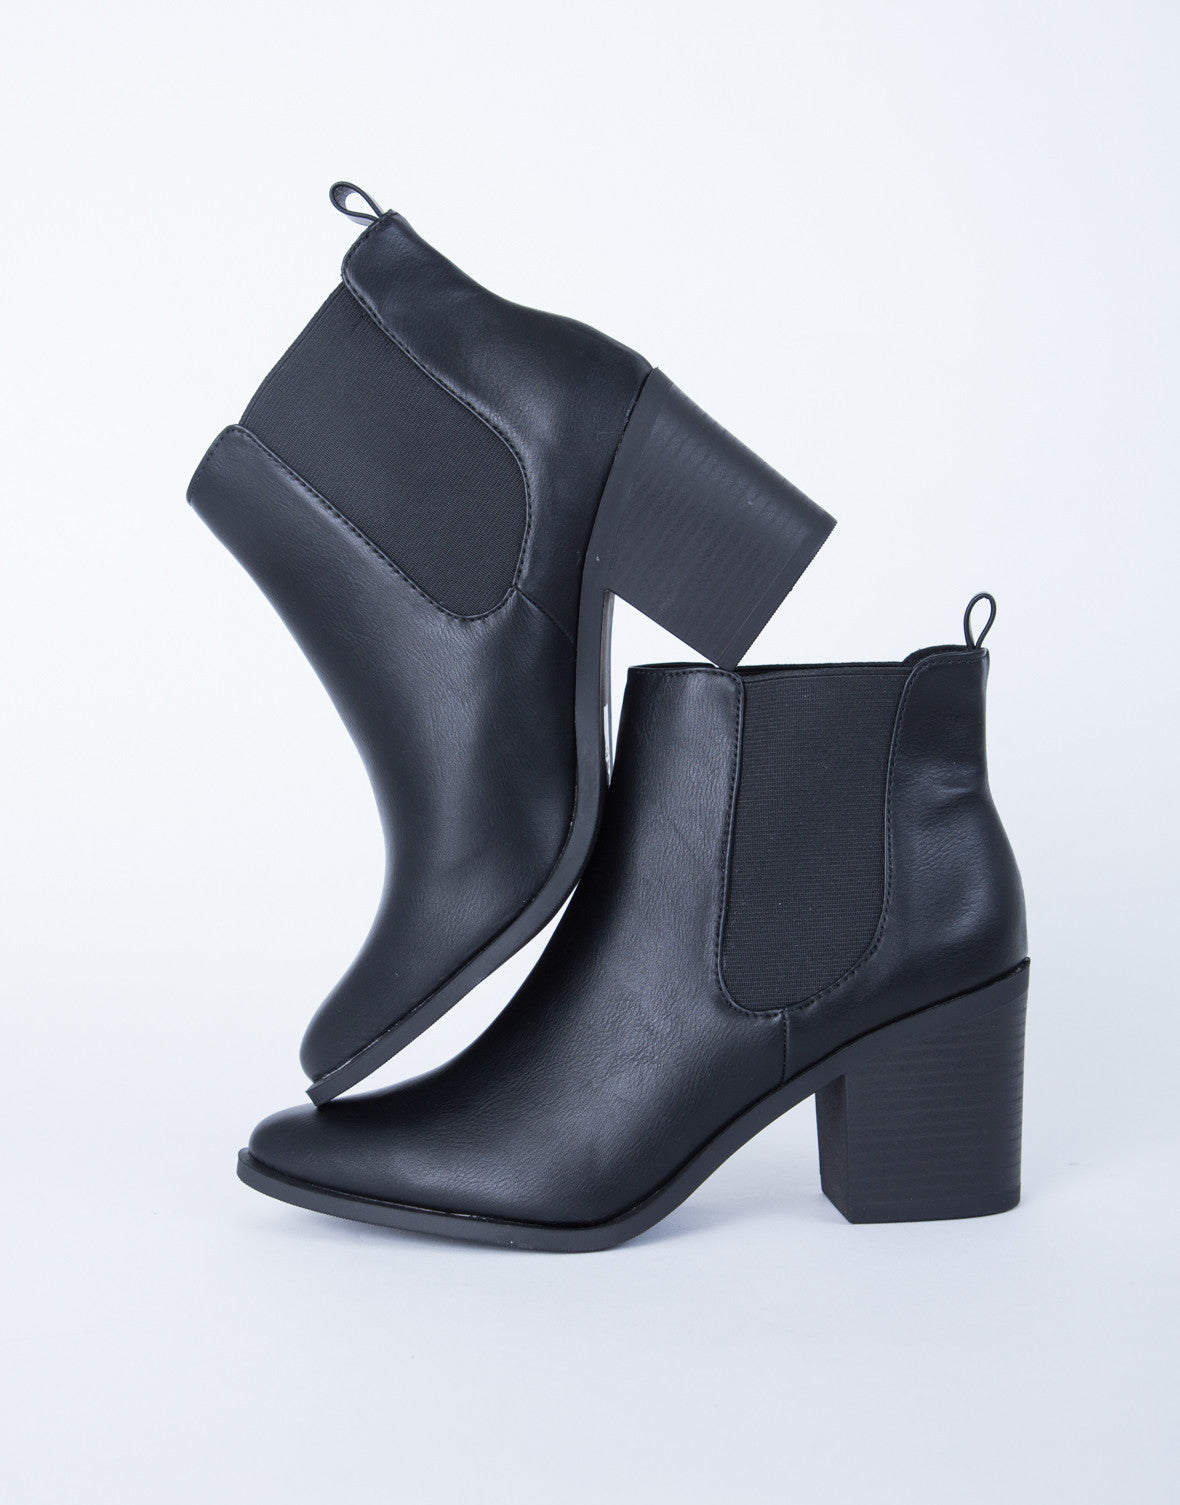 24014a5c7 Leather Chunky Heel Booties - Black Leather Booties - Chunky Block ...